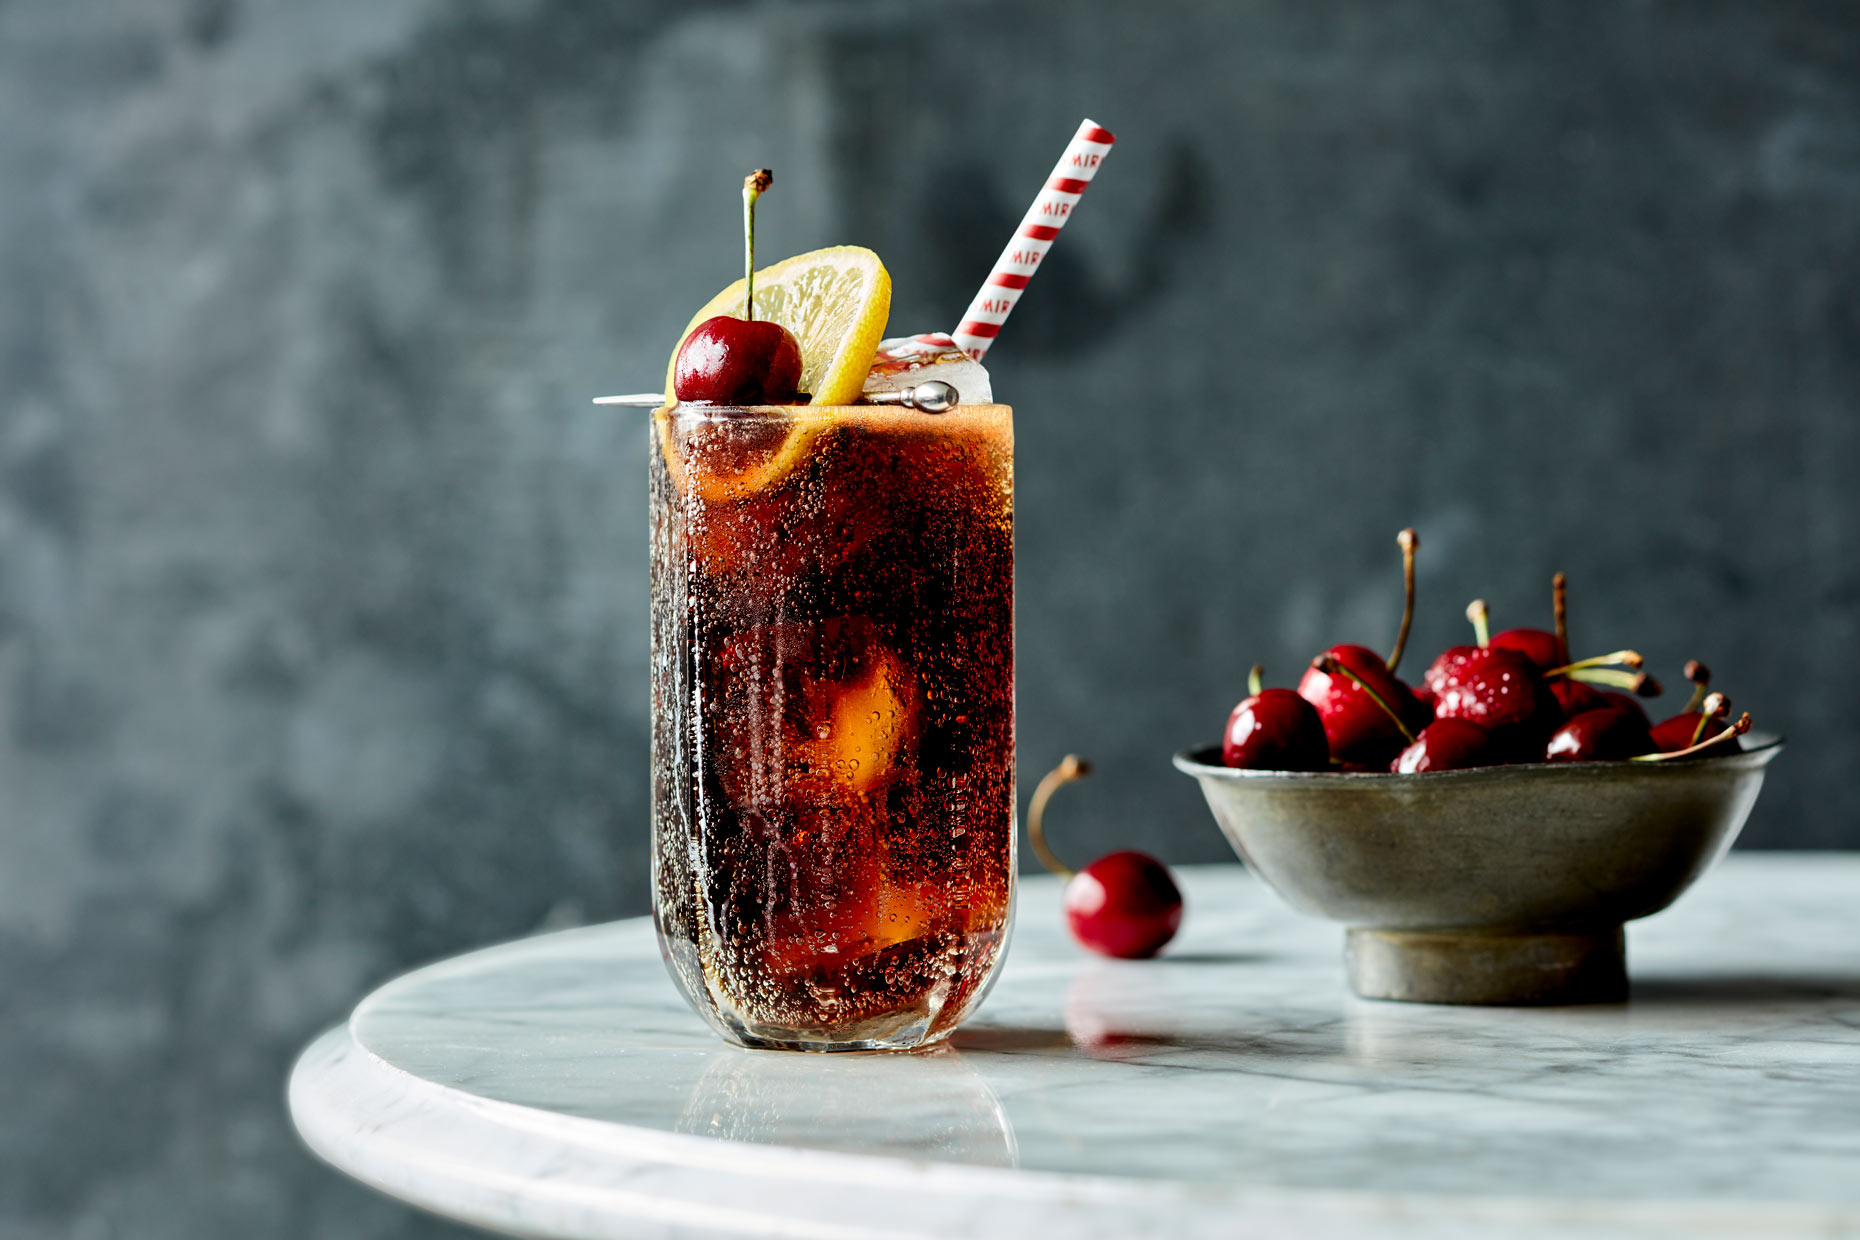 SMIRNOFF-LIFESTYLE_VODKA-COKE_1106-FINAL